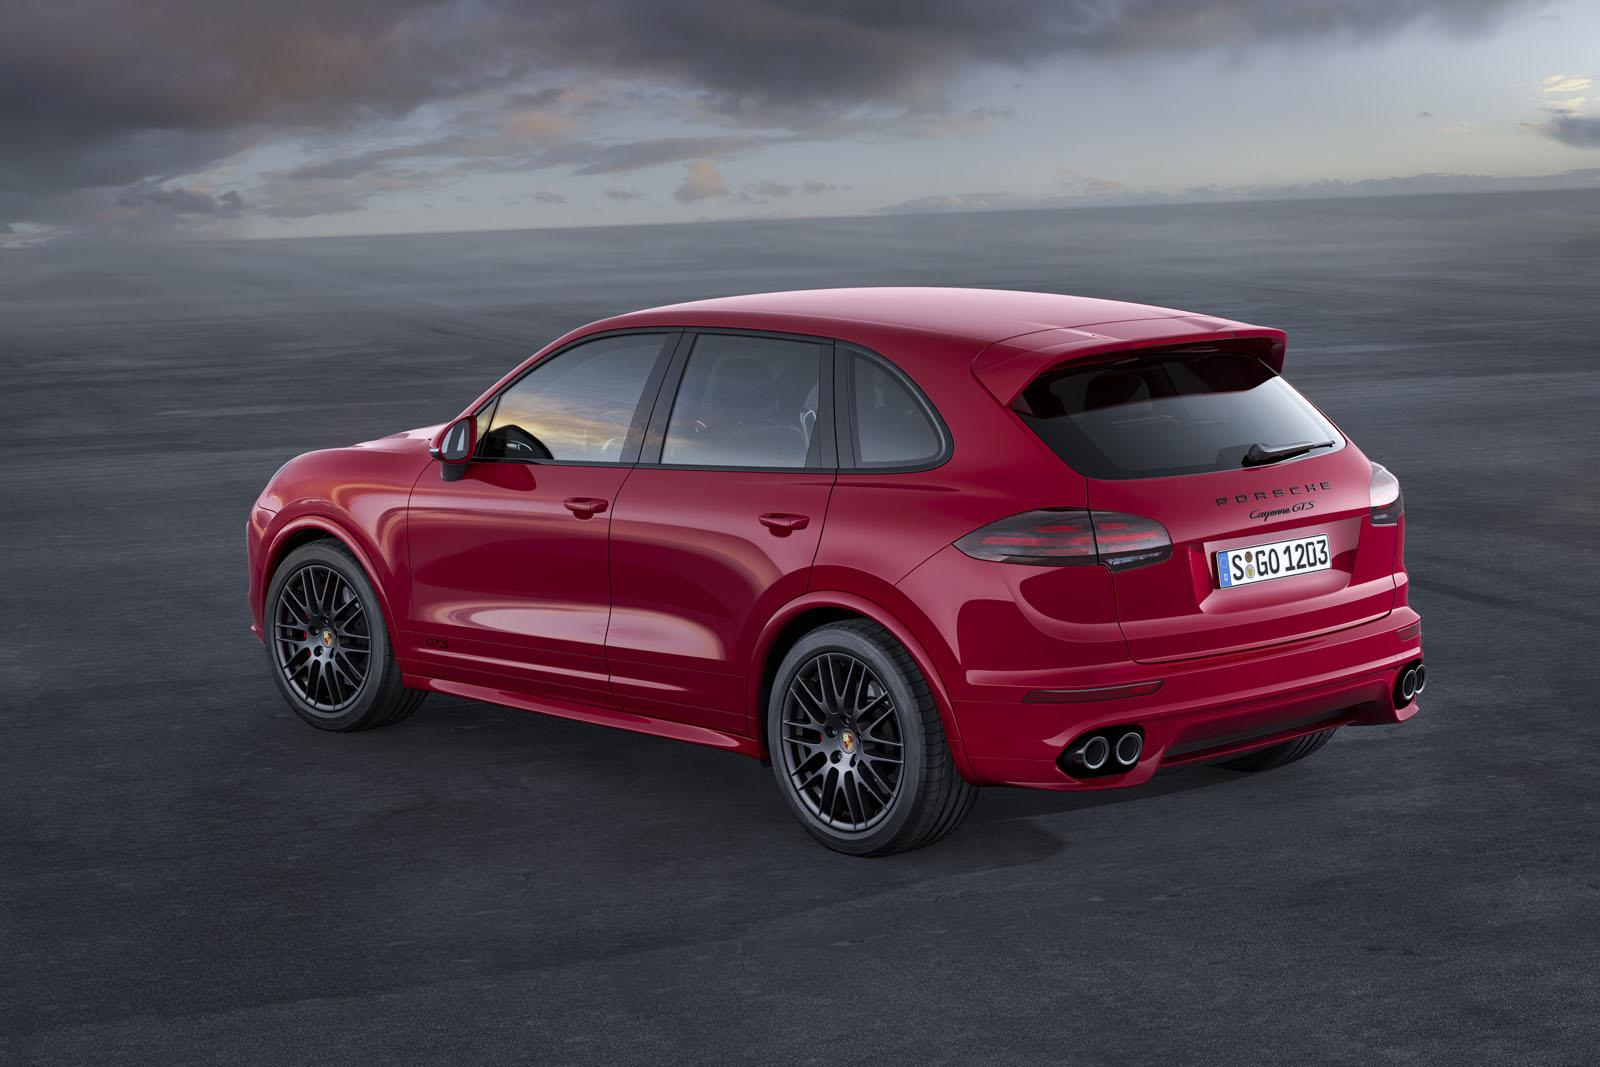 2015 Porsche Cayenne Gts Downsizes To A Twin Turbo V6 Video Rover 400 Fuse Box